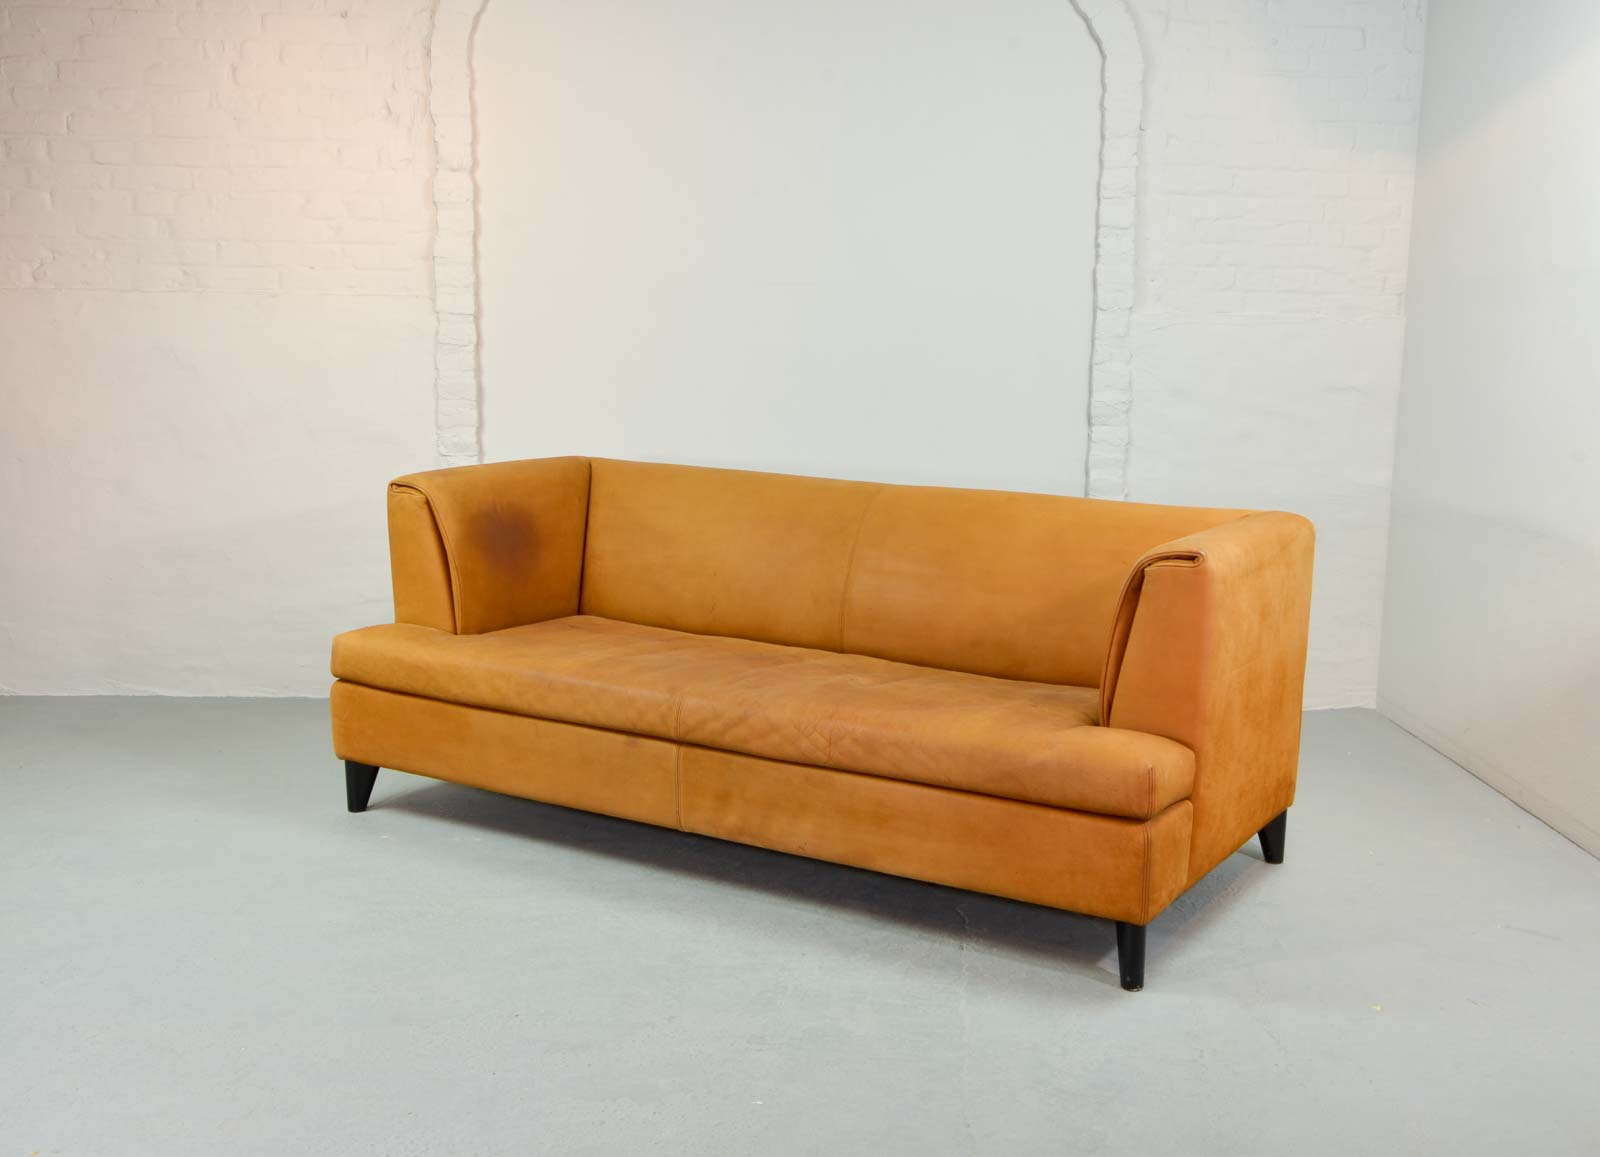 mid century cognac colored nubuck leather sofa by paolo piva for wittmann. Black Bedroom Furniture Sets. Home Design Ideas